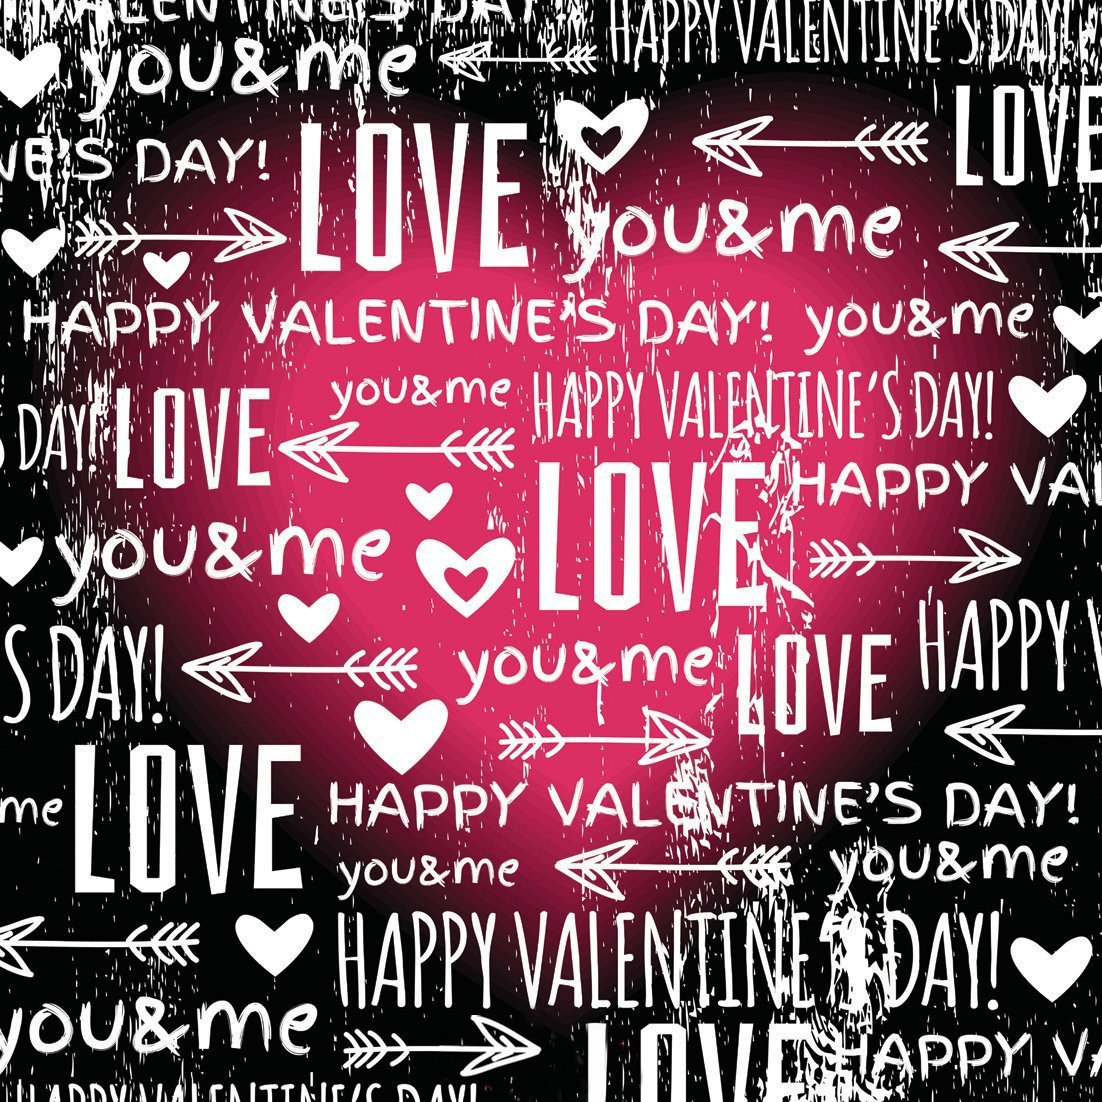 Valentine's Day Backdrop Cupid's Arrow Love You and Me Sweet Hearts Romantic Wallpaper Photography Background-in Background from Consumer Electronics